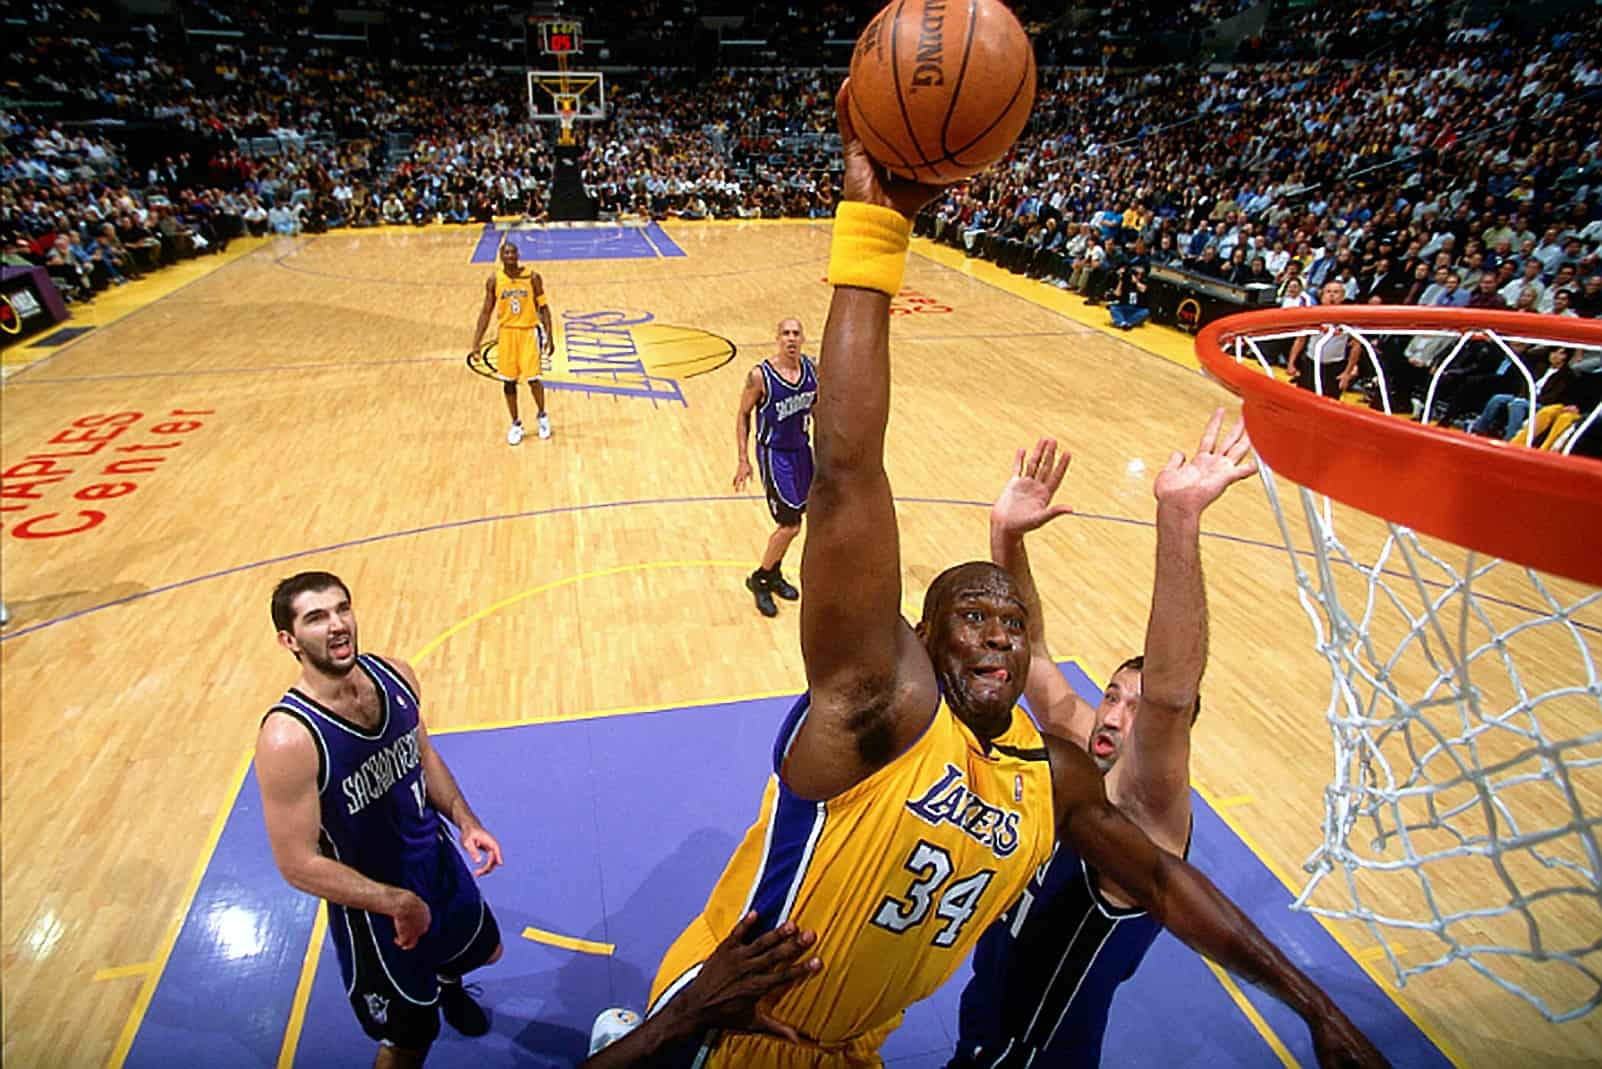 Shaquille O'Neal always wants victory